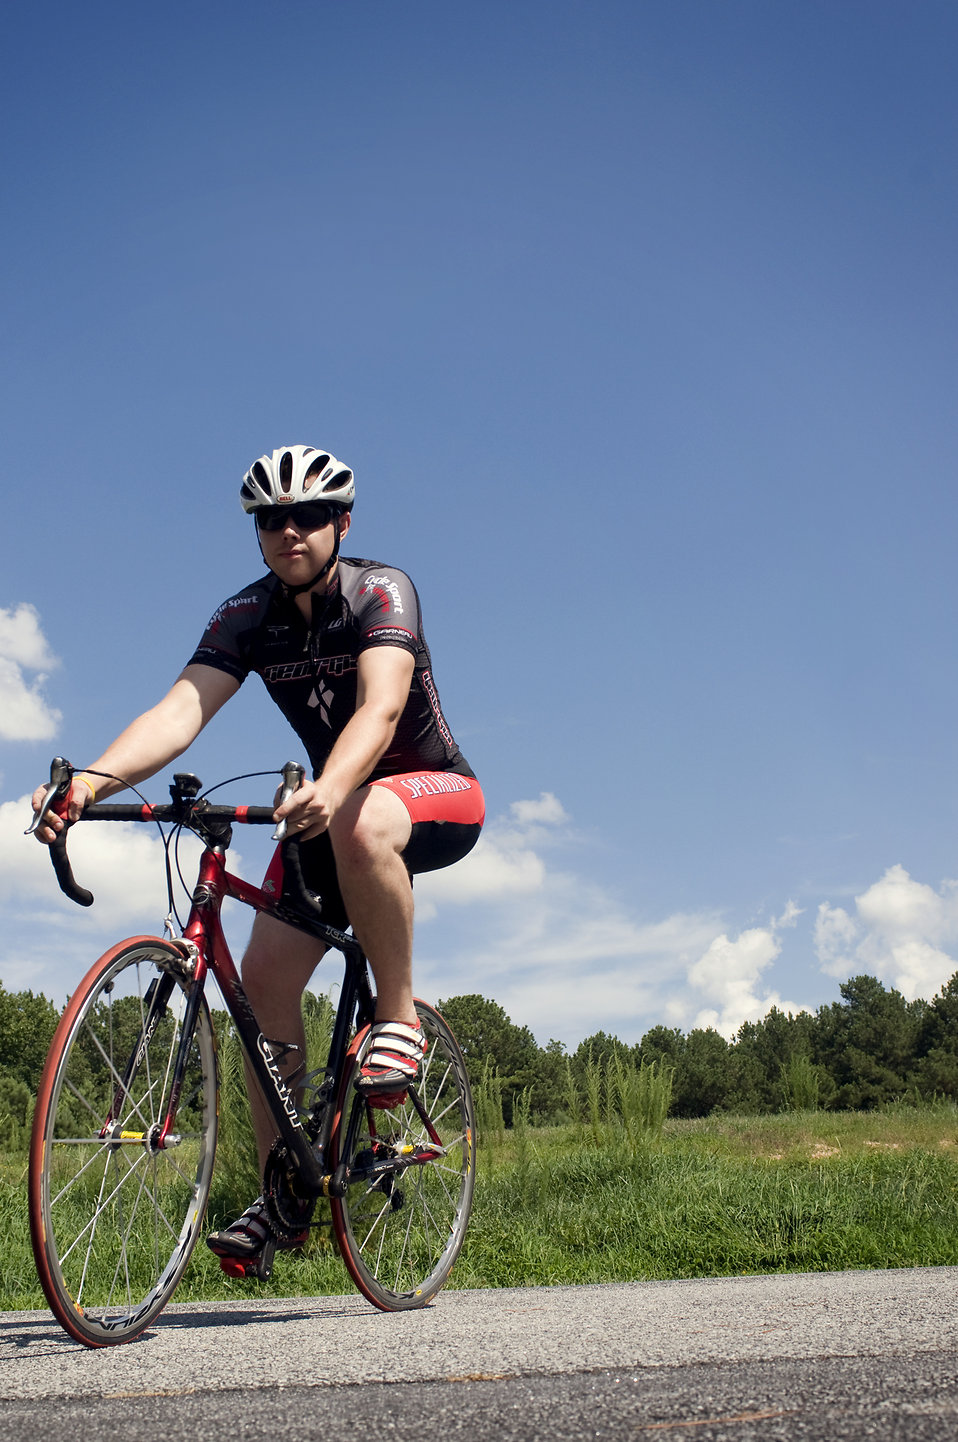 This photograph depicts a male bicyclist, who was riding his bicycle on a sunny Georgia day. As a precaution, he had worn a streamline, aerodynamically-designed helmet, sunglasses, and skin-tight riding wear, all of which would help protect him from the elements, and traumatic injury.